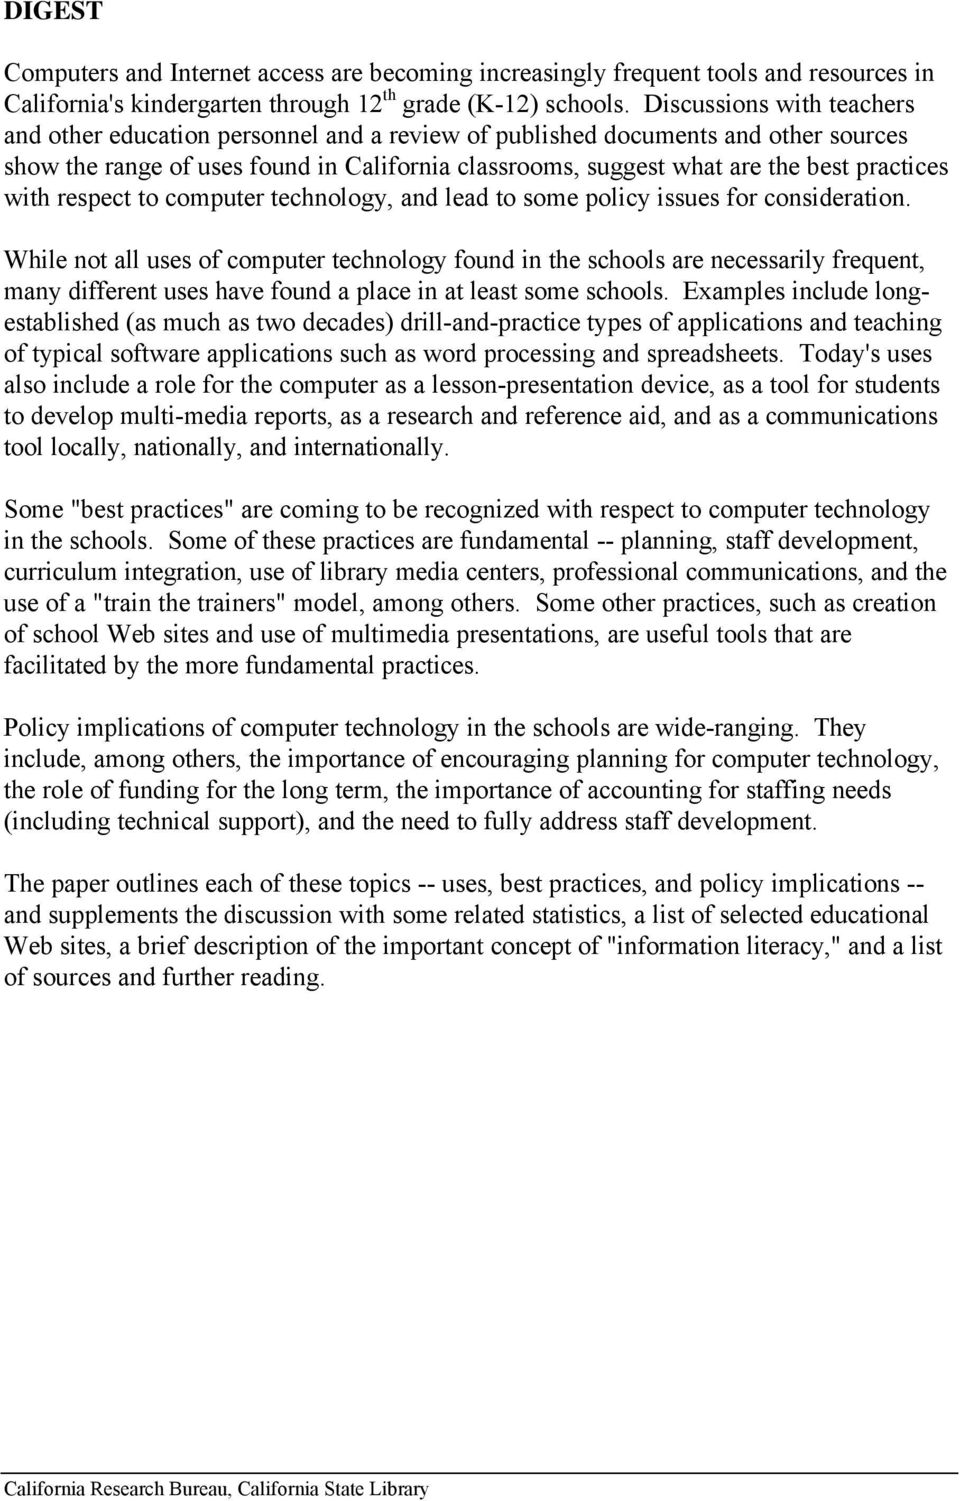 practices with respect to computer technology, and lead to some policy issues for consideration.